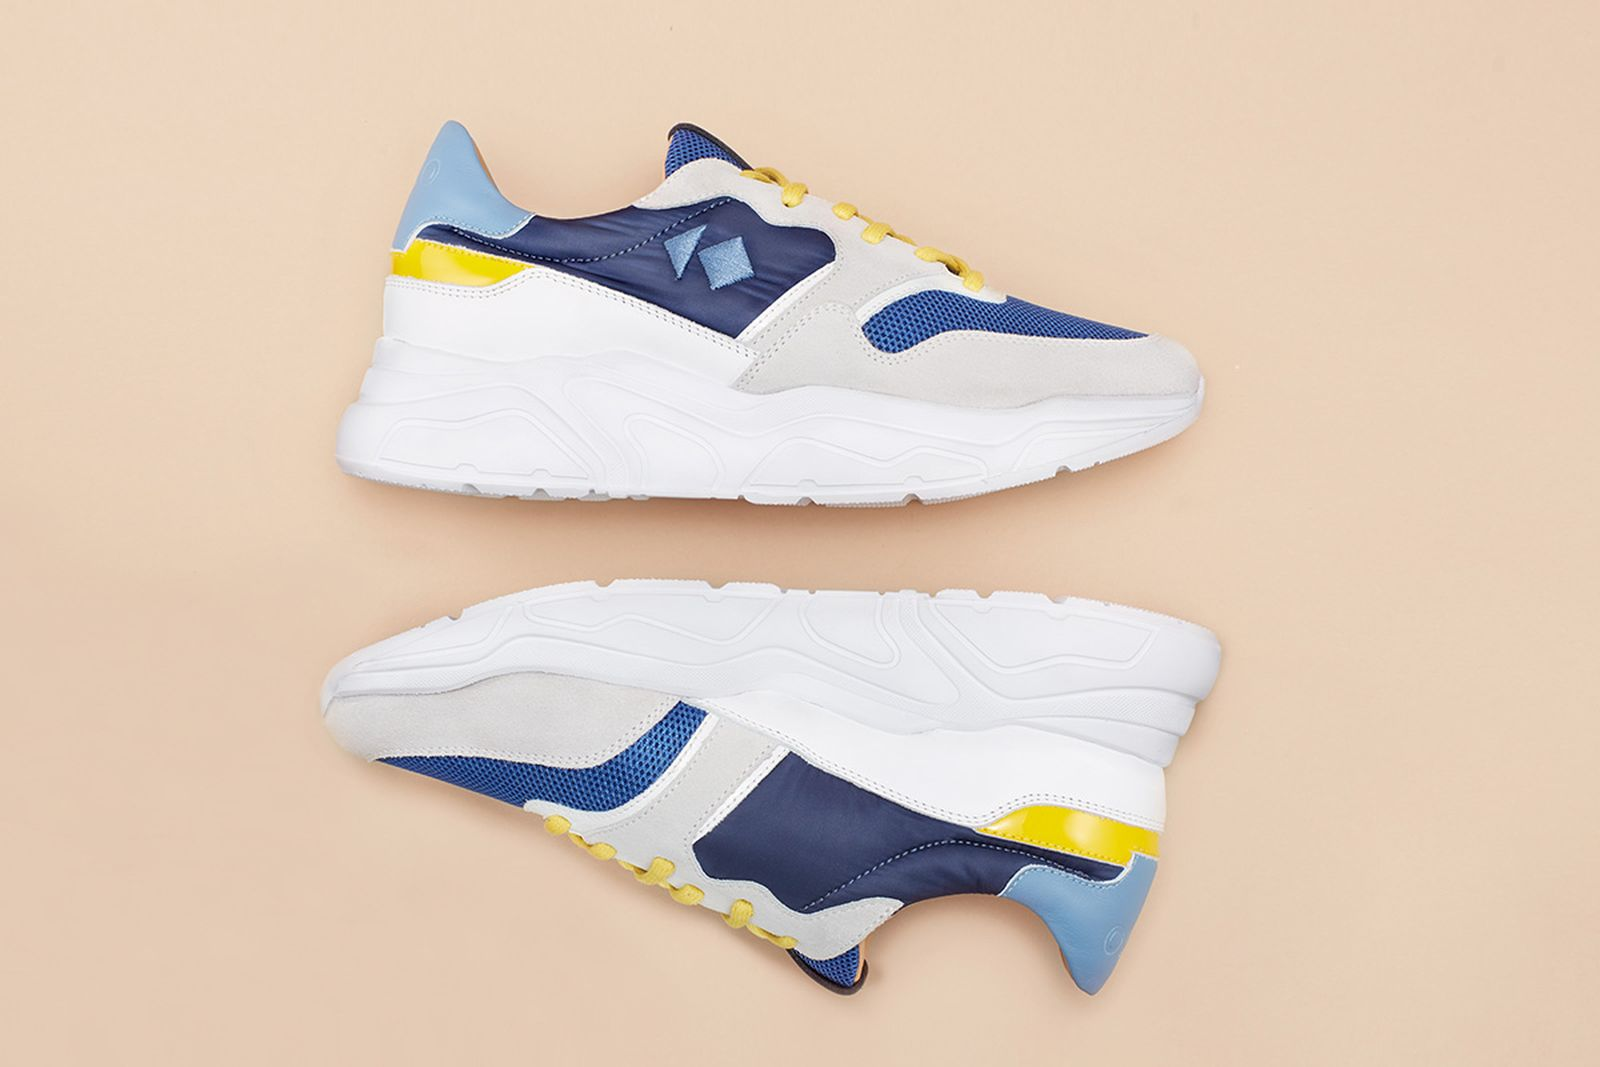 koio avalanche blue yellow release date price